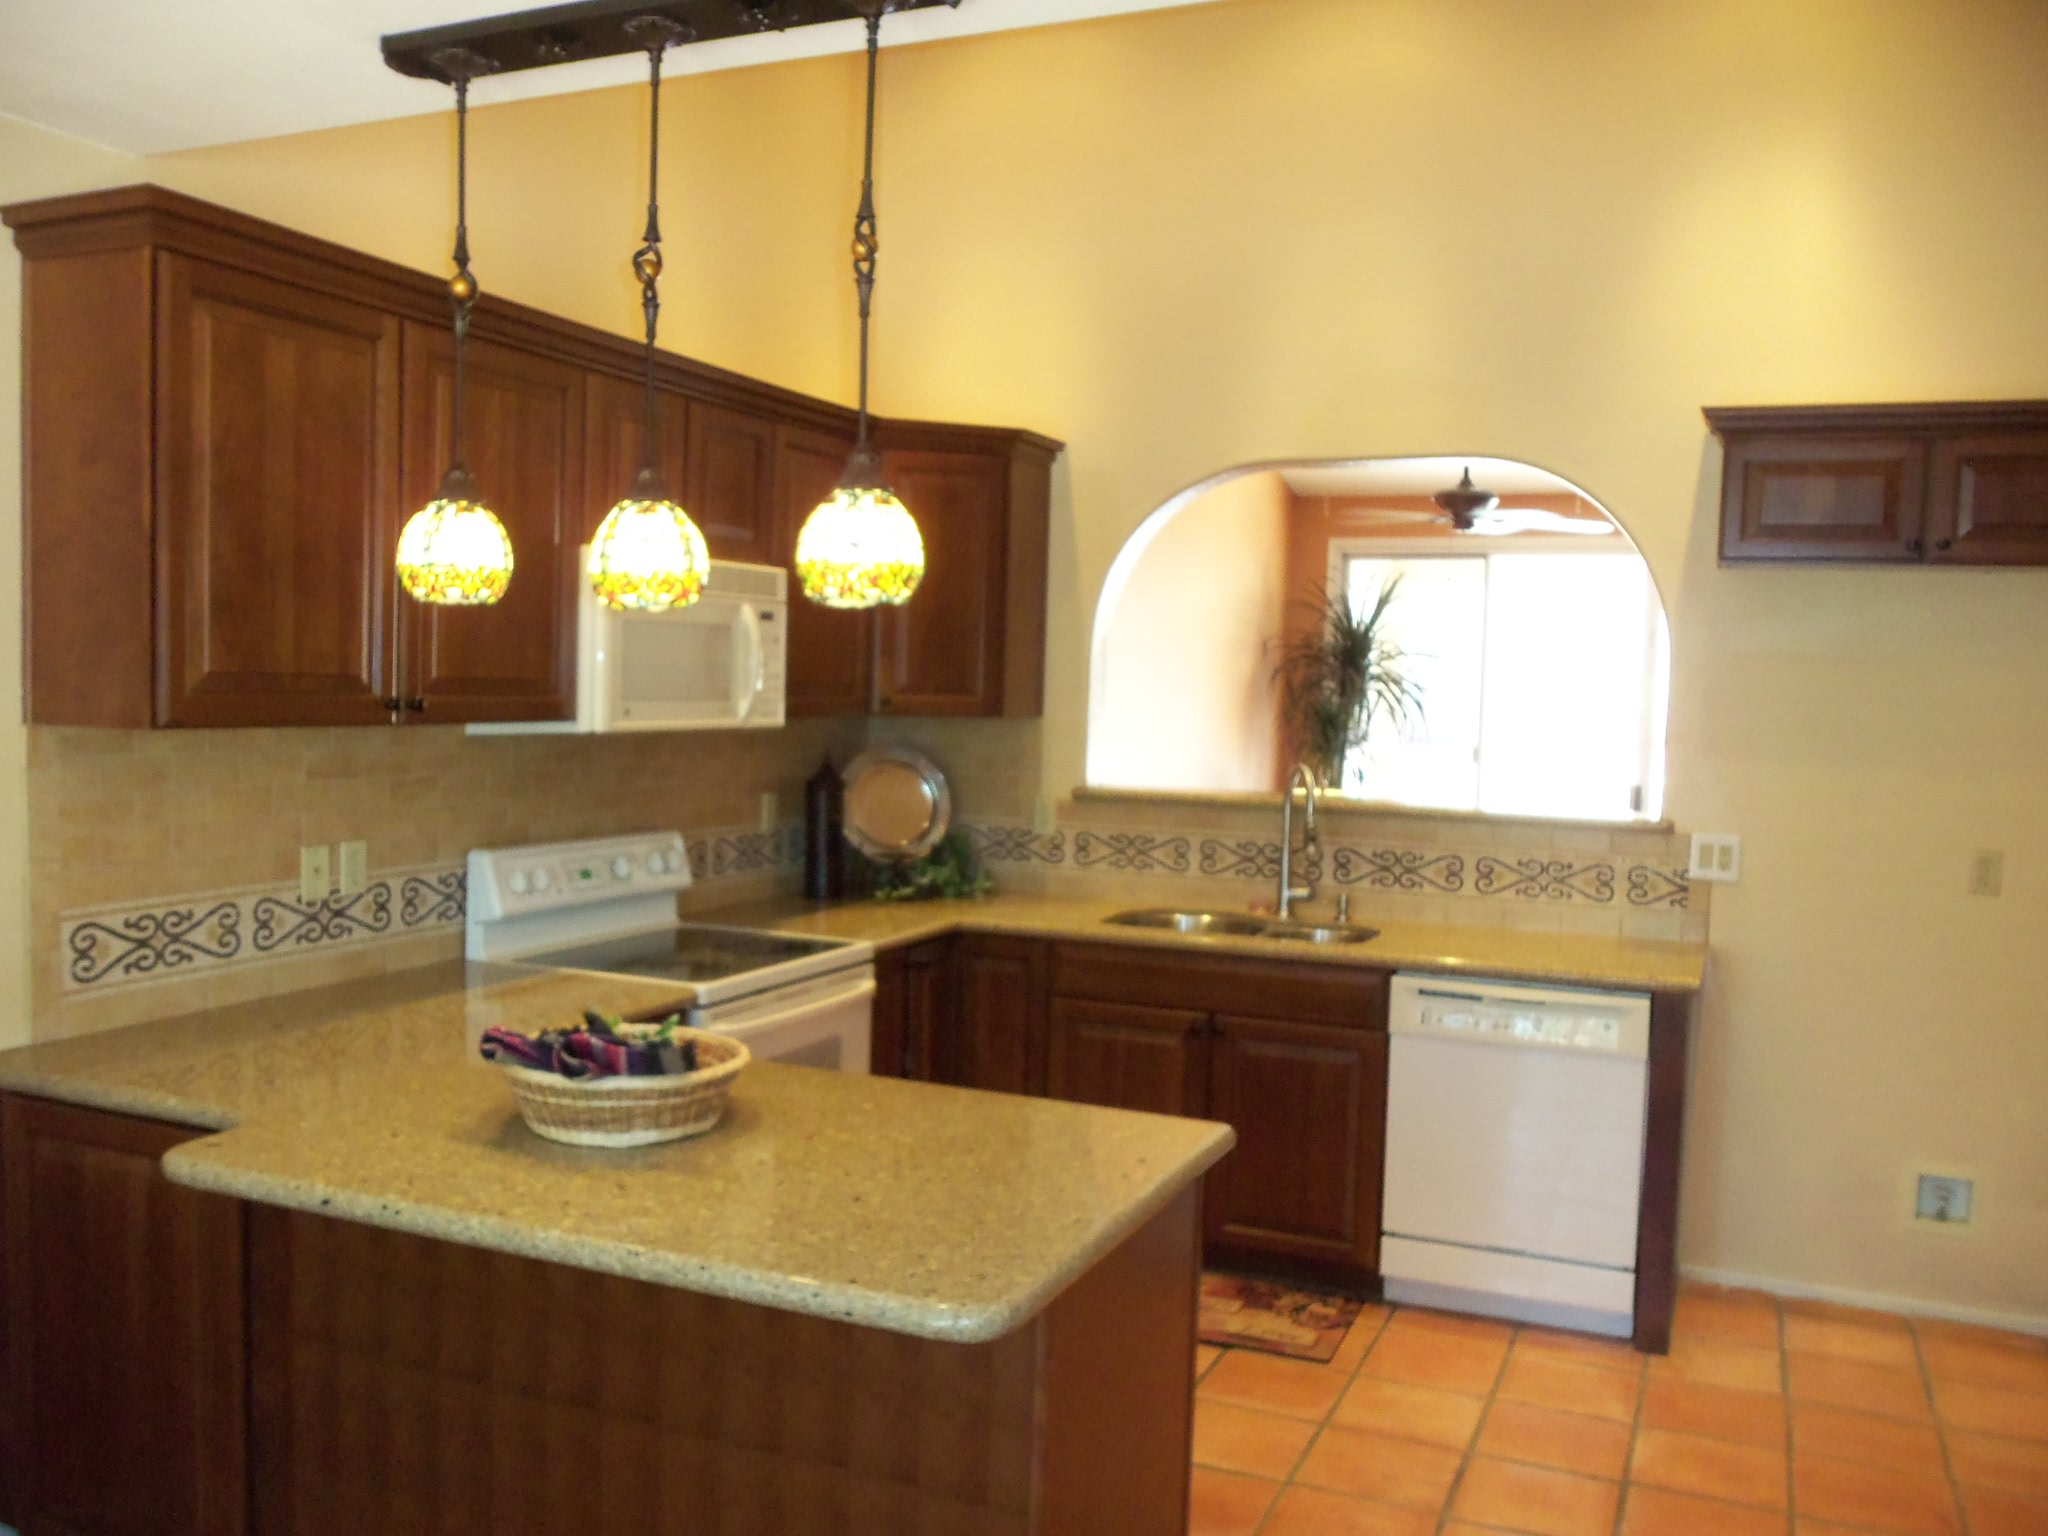 Spanish Style 3 Bedroom Bank Owned Home Under 200000 In